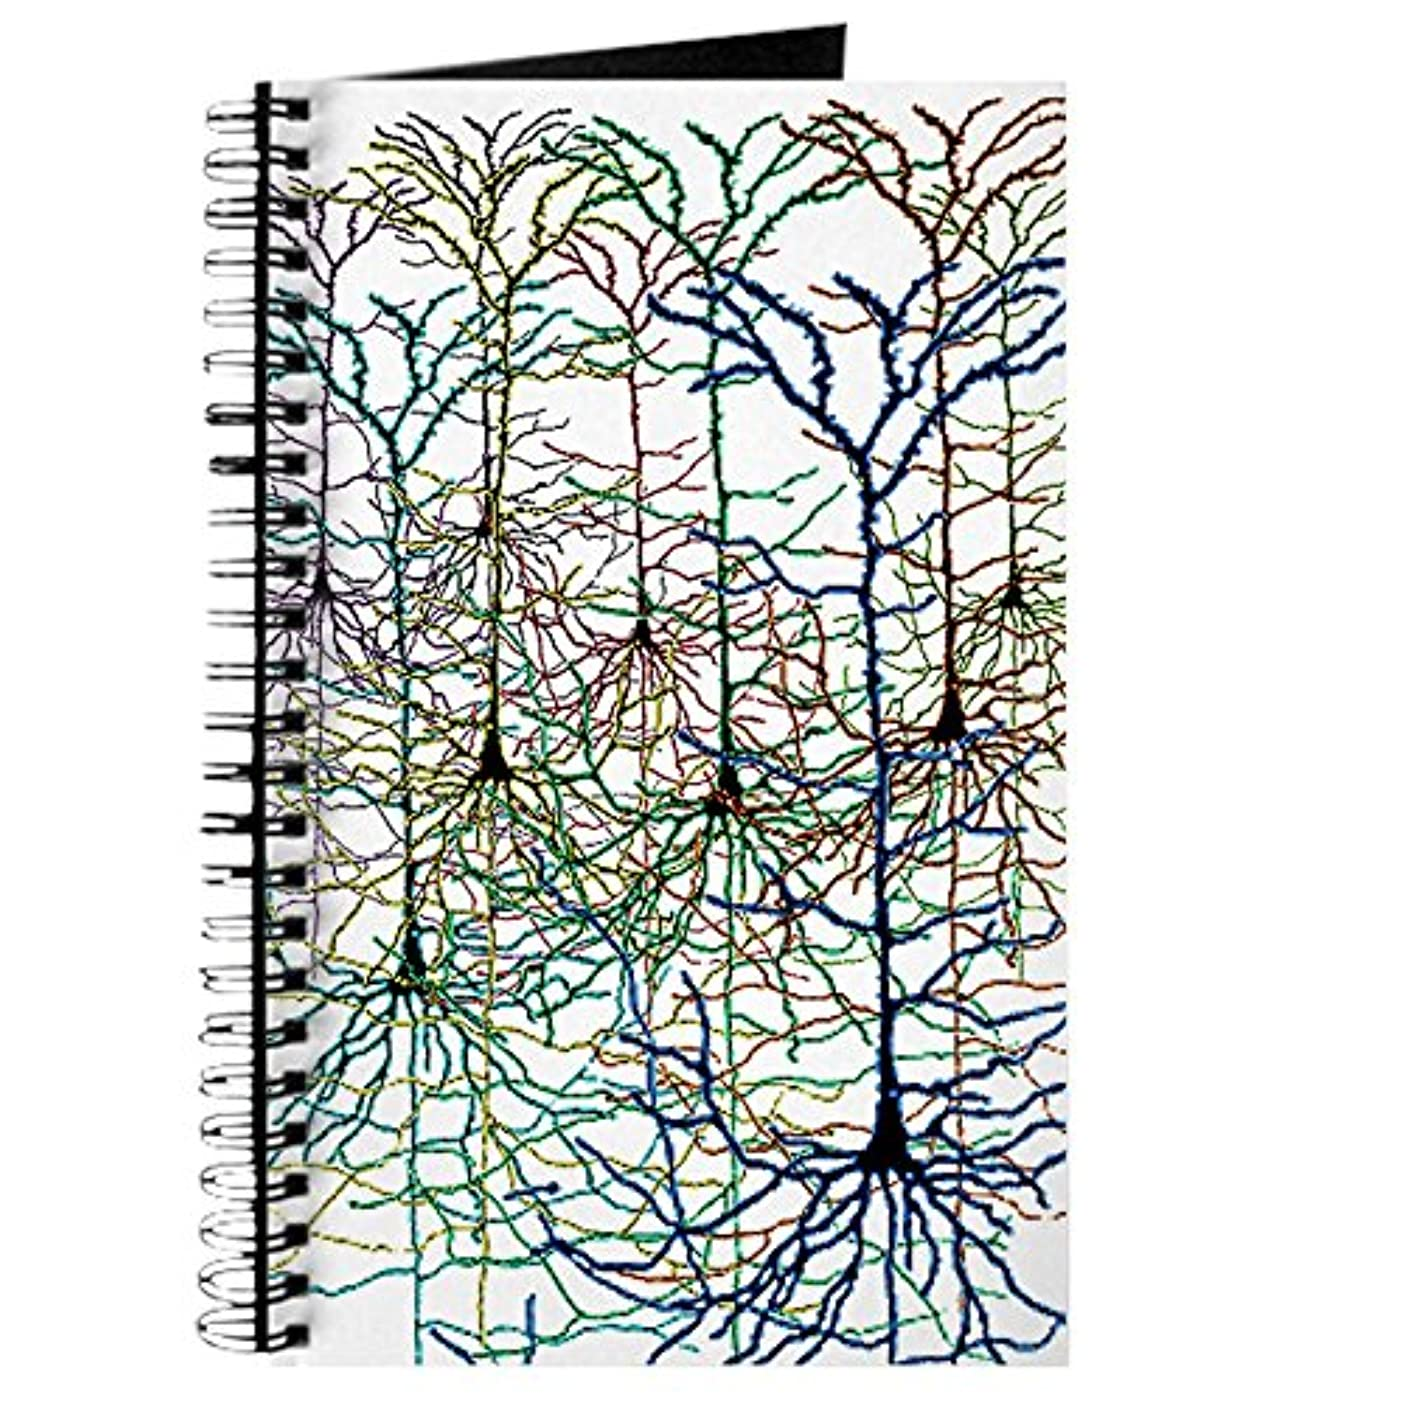 CafePress Neuron Spiral Bound Journal Notebook, Personal Diary, Dot Grid